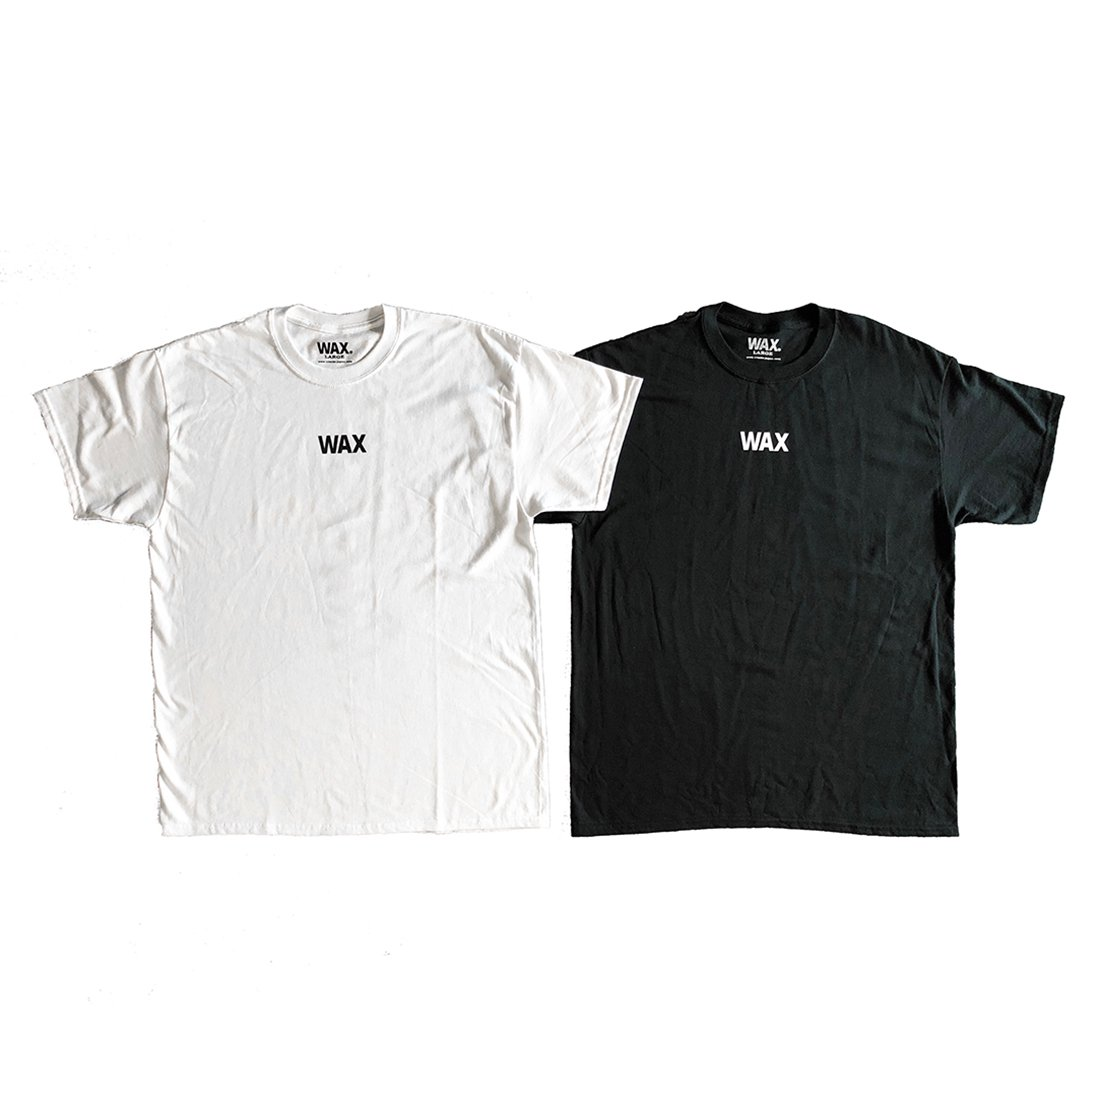 THE HARD MAN × CAPTAINS HELM #WAX BASIC S/S TEE